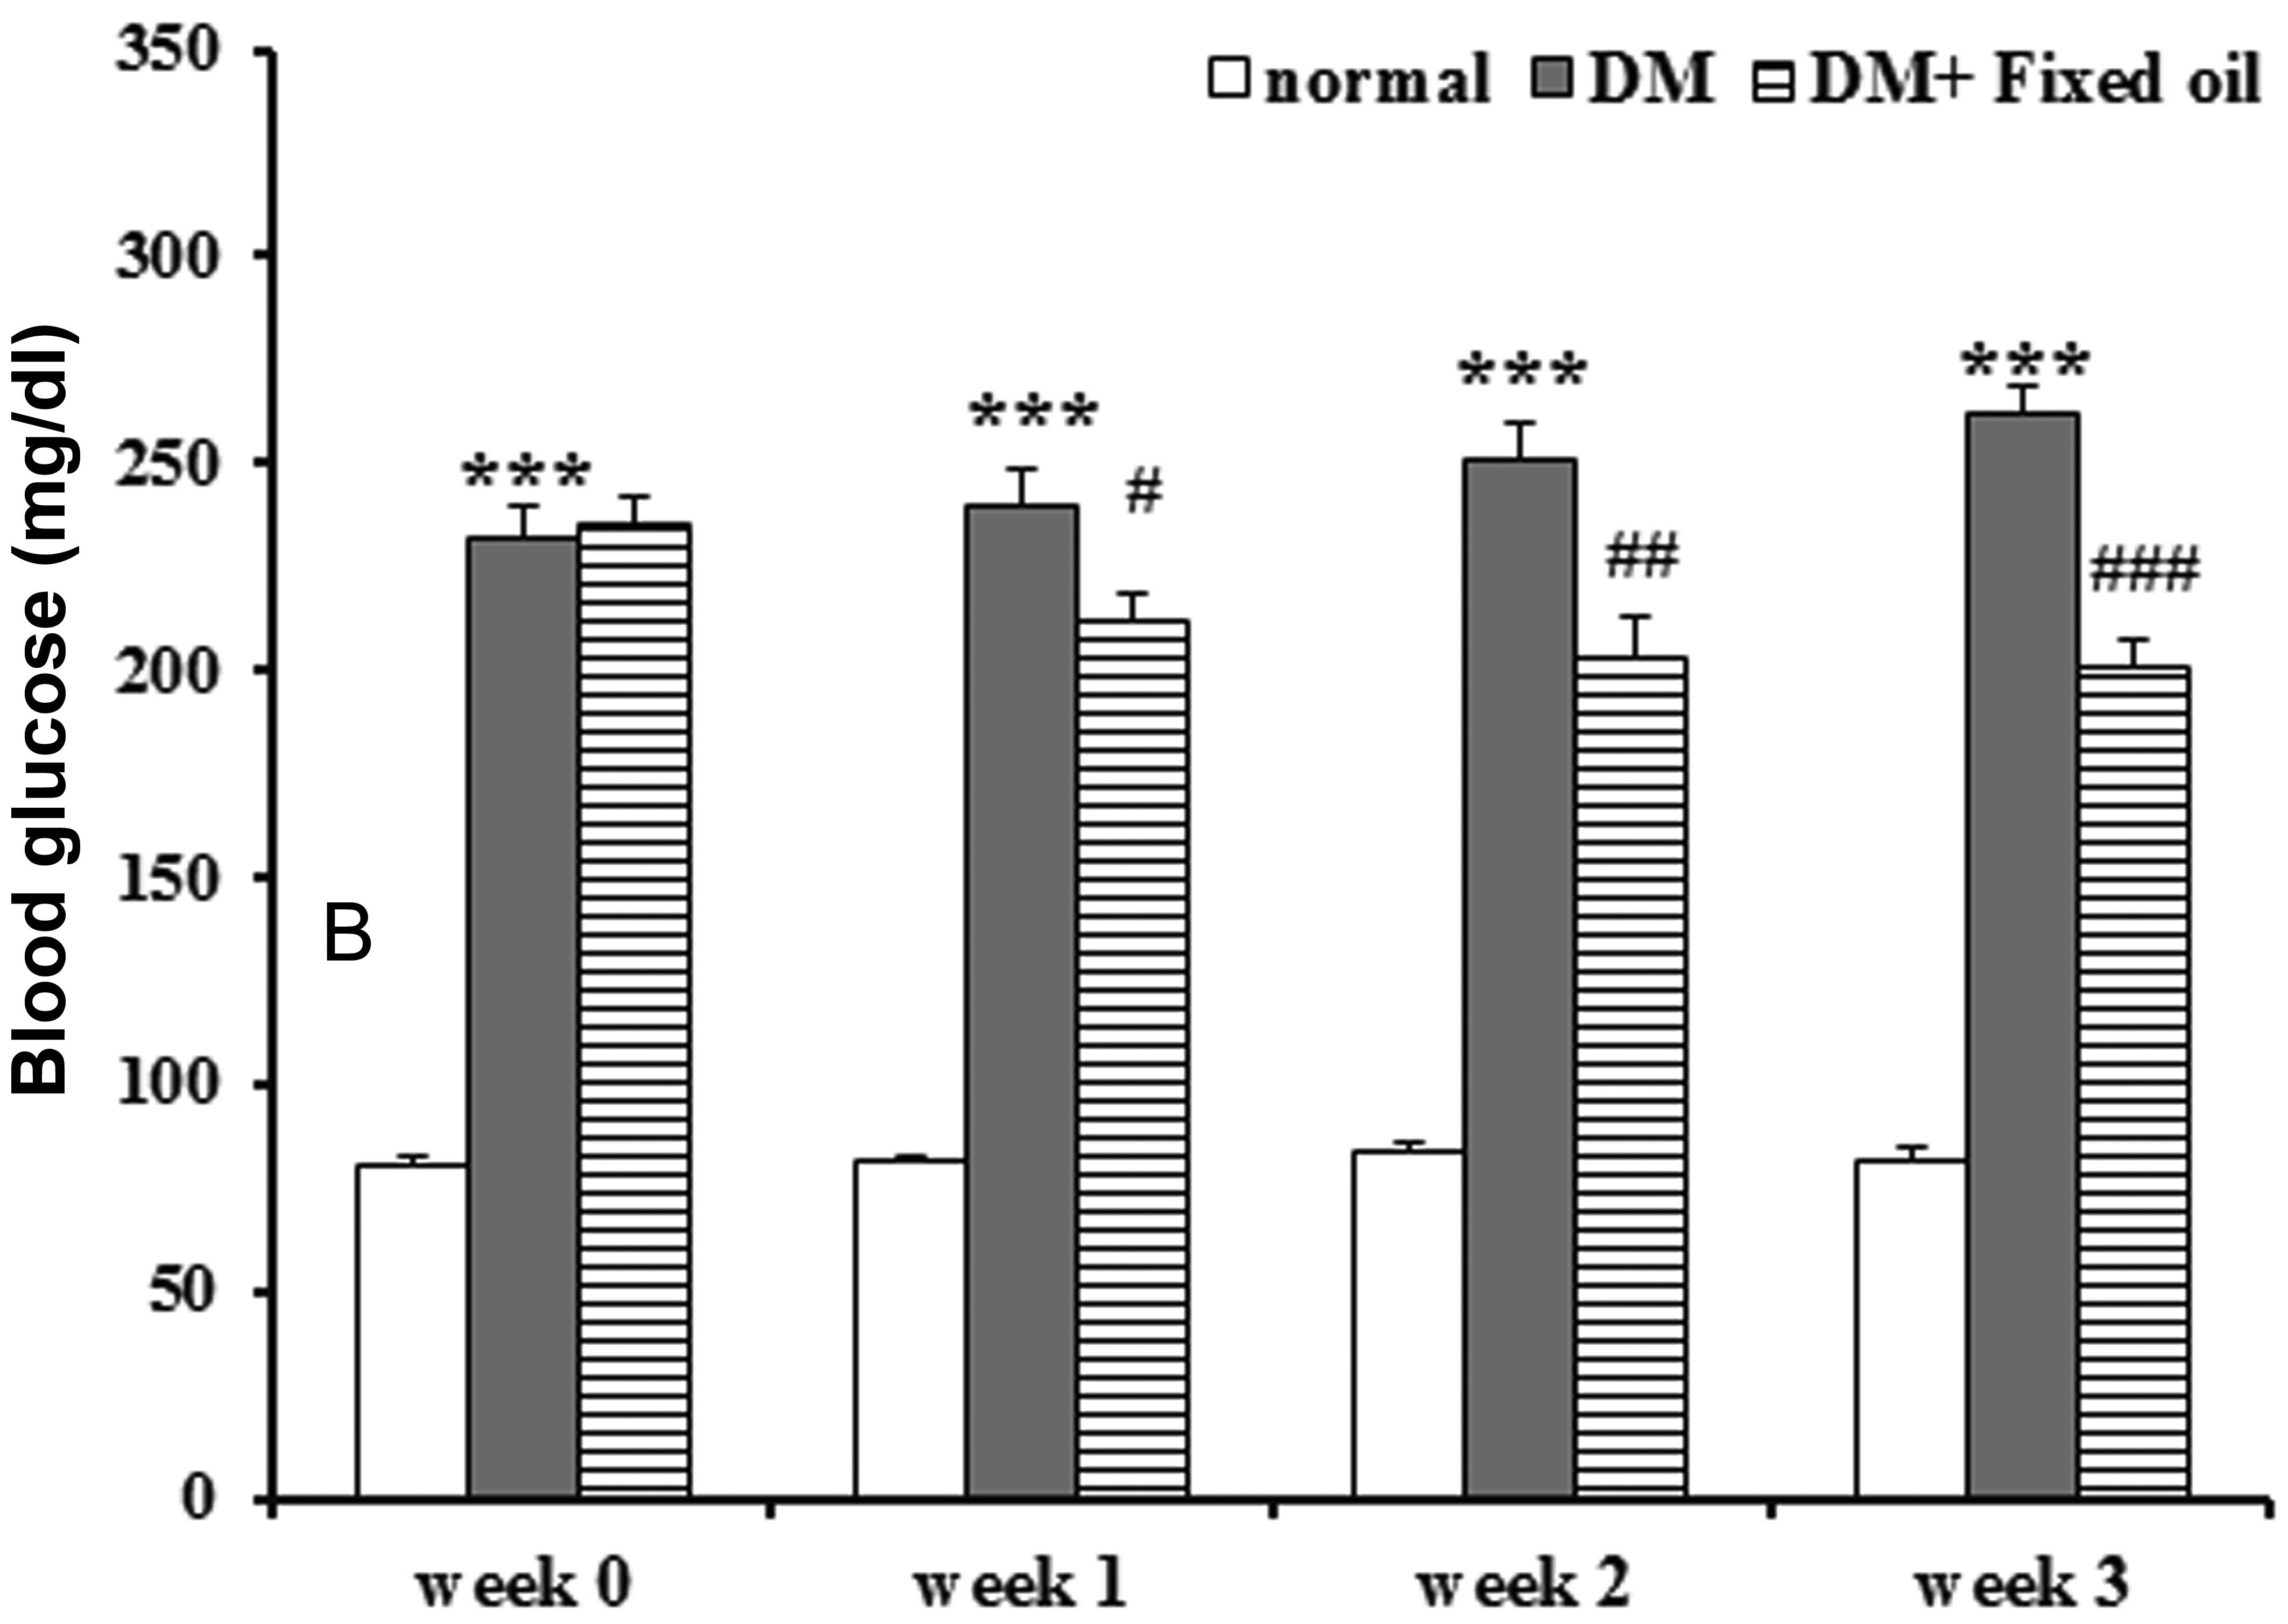 Anti-diabetic and anti-oxidative activity of fixed oil